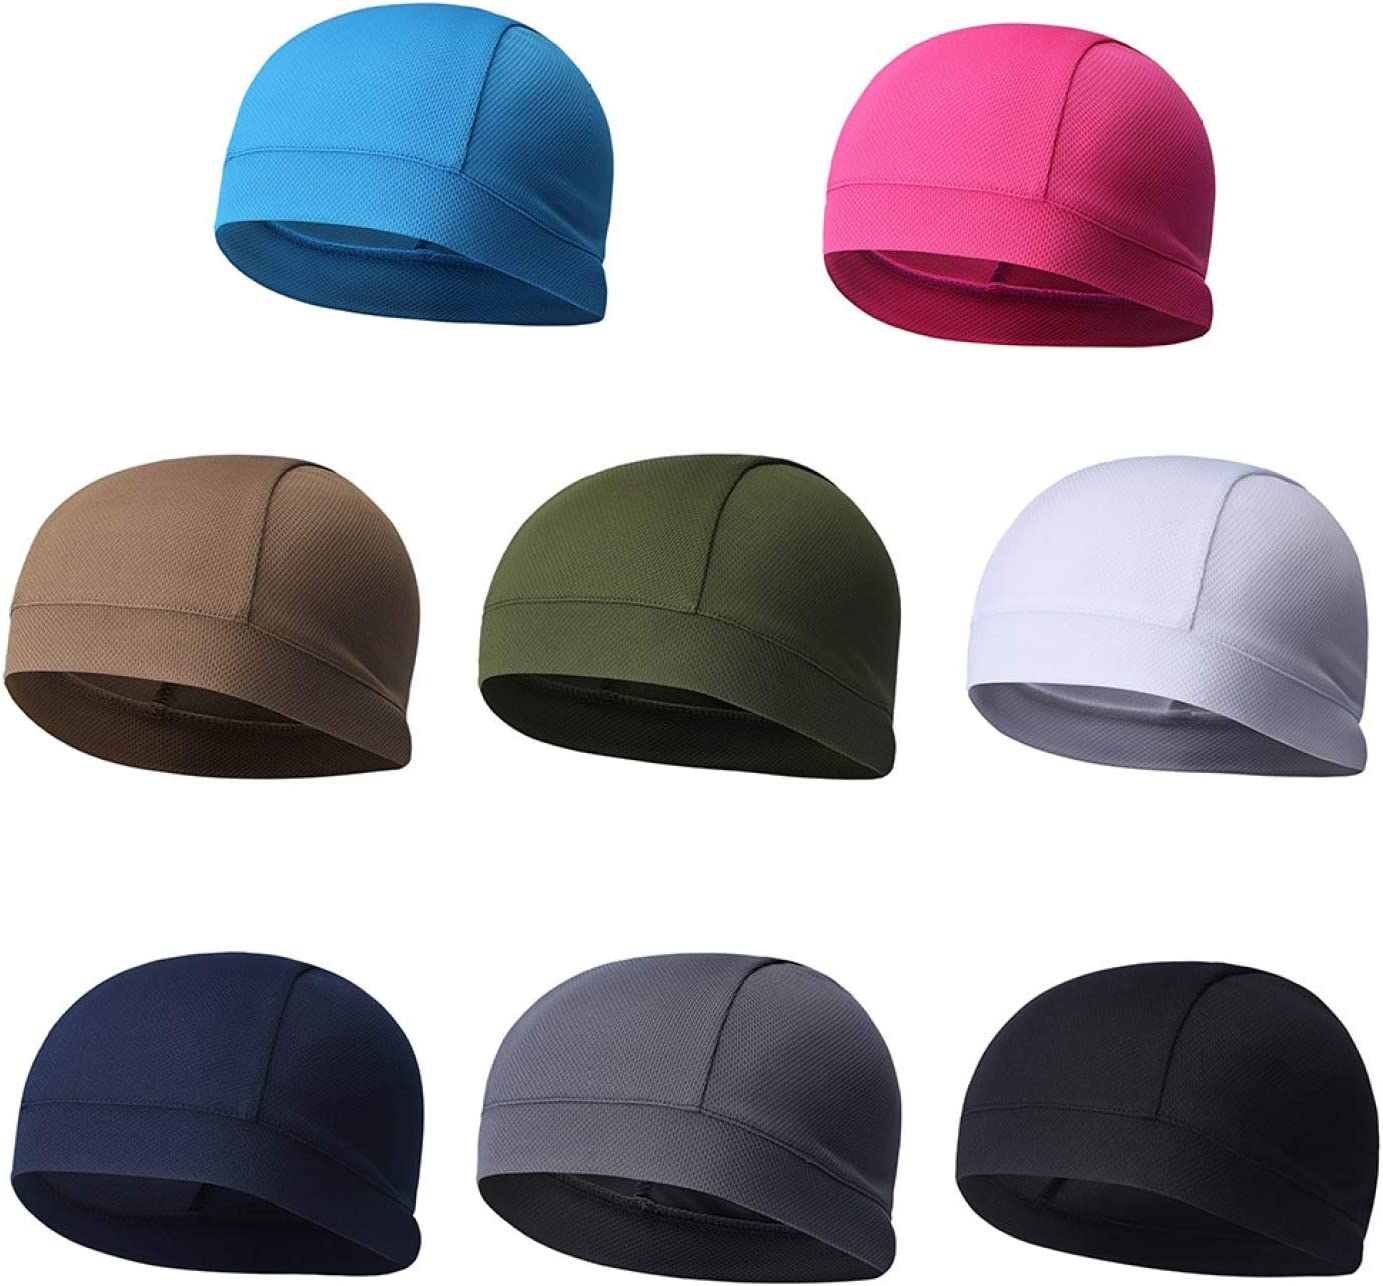 Z/&I Professional Summer Absorb Sweat Breathable Elastic Riding Skull Cap Solid Color Outdoor Sport Quick-Dry Cycling Cap for Women Men